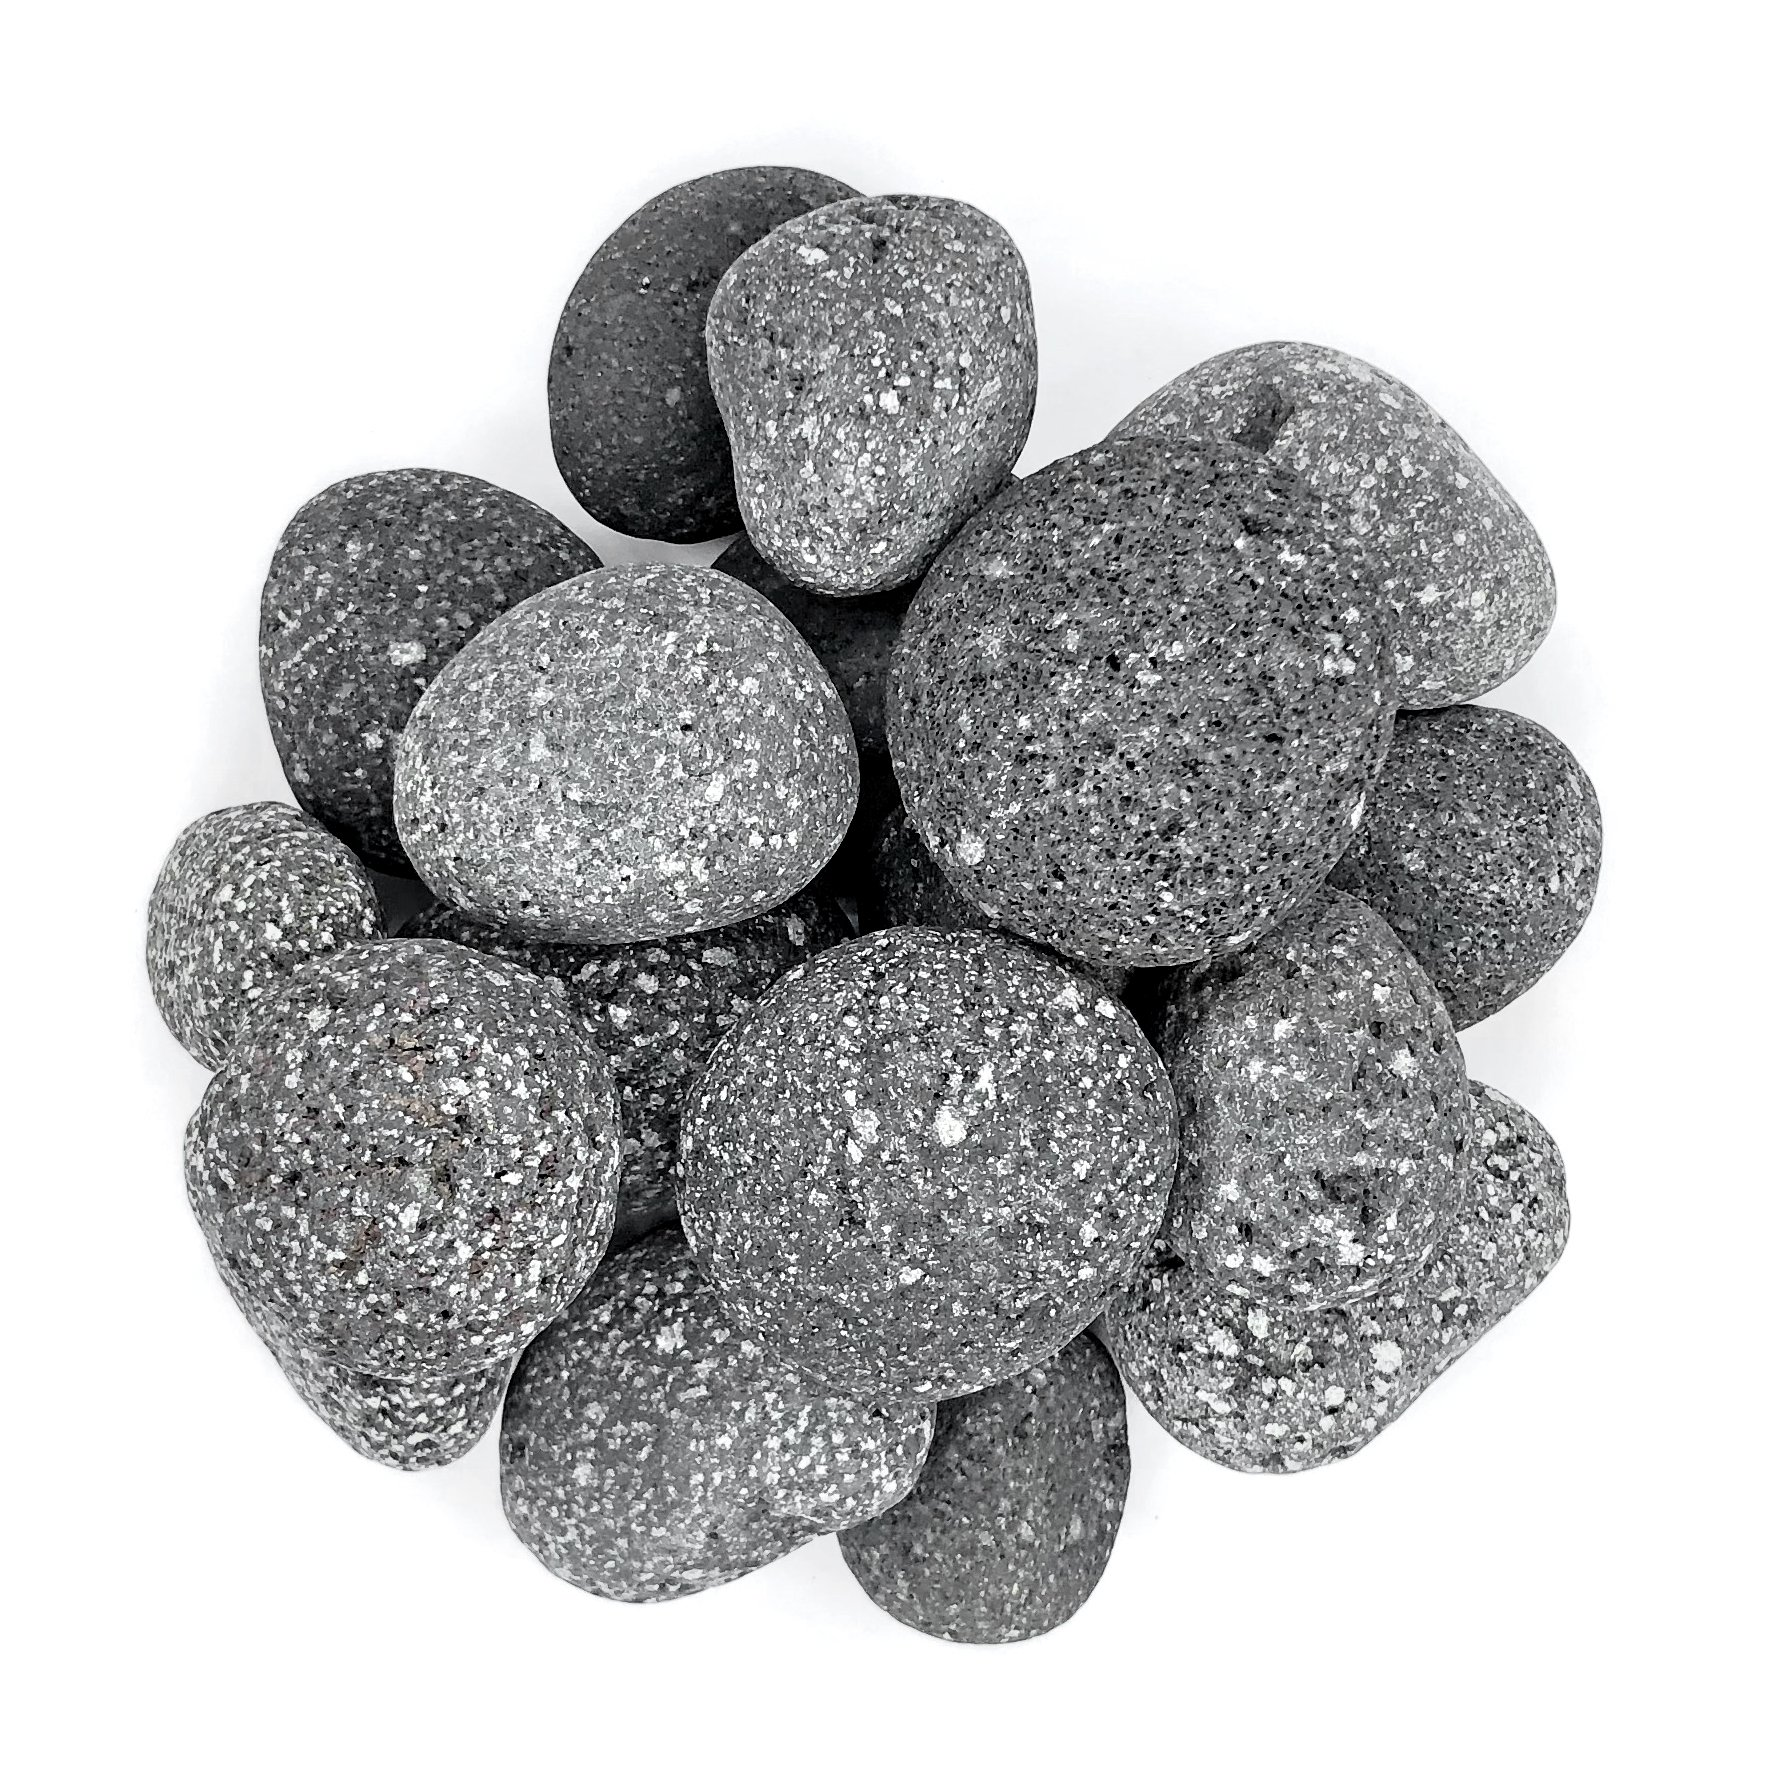 Royal Ram 2 Pounds Natural Lava Stones - 1'' to 2'' Round Pebbles - Heatproof, Perfect For Fire Pits, Fire Places, BBQ, Indoor/Outdoor Use